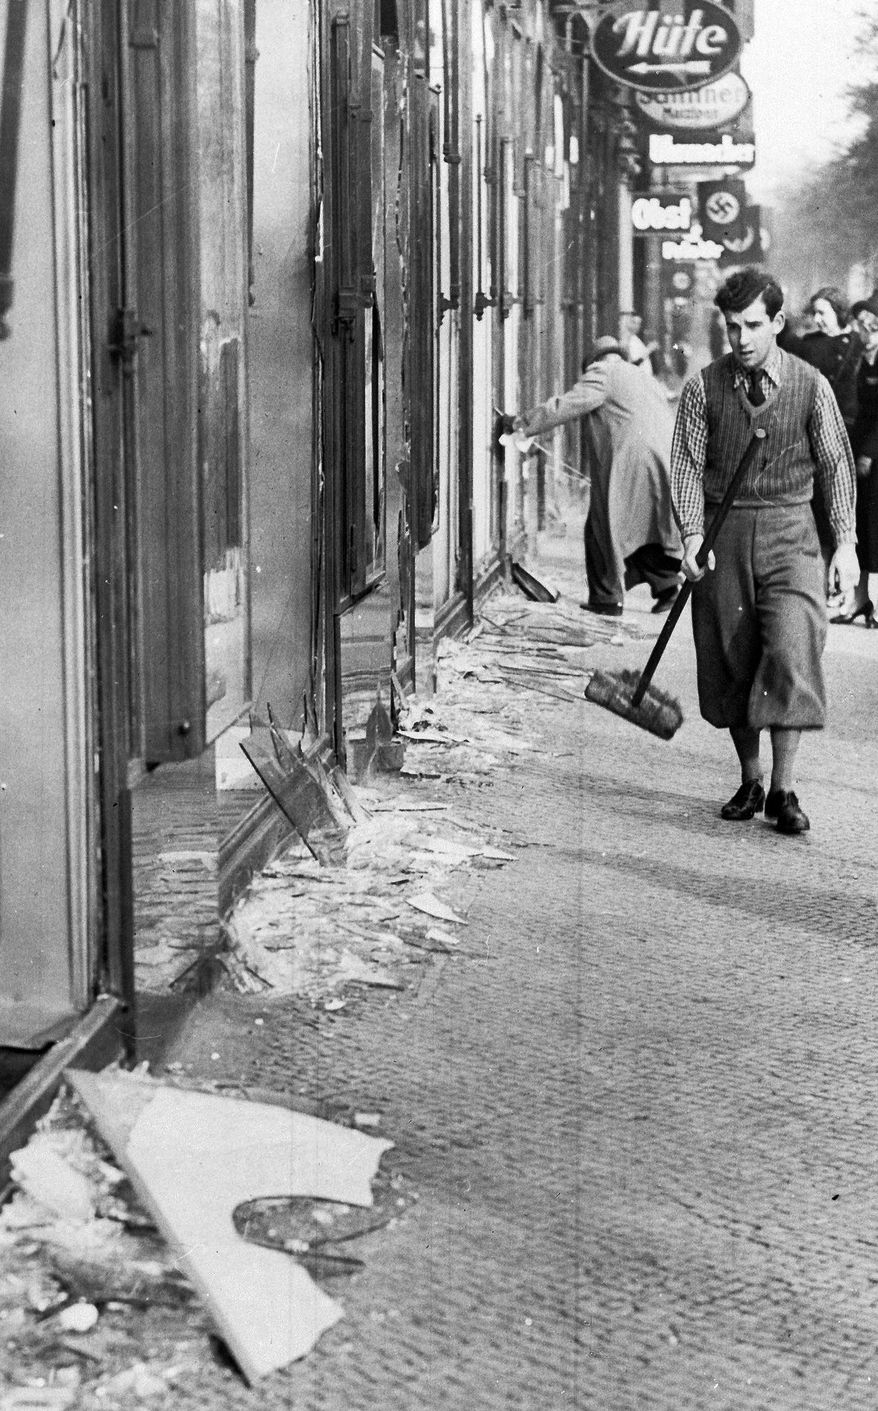 ** FILE ** A youth with a broom prepares to clear up the broken window glass from a Jewish shop in Berlin on Nov. 10, 1938, the day after the Kristallnacht rampage, when the Nazis set fire to hundreds of synagogues, looted thousands of Jewish businesses and attacked Jews in Germany and Austria. (Associated Press)